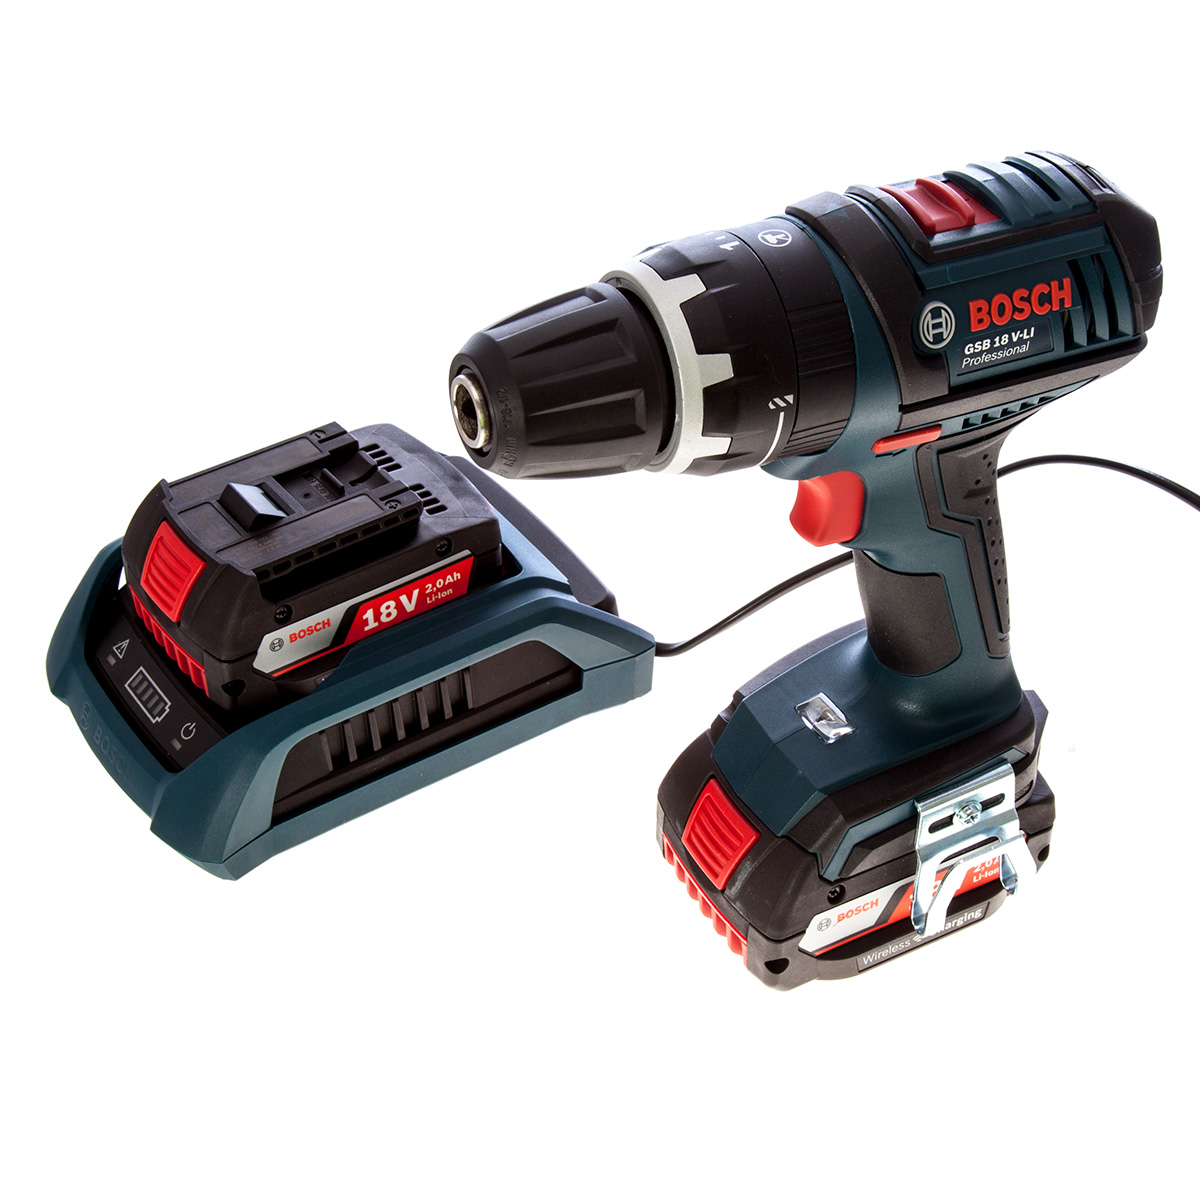 BOSCH GSB18V-LI DYNAMIC SERIES COMBI DRILL WITH 2X 2.0AH LI-ION BATTERIES + WIRELESS CHARGING